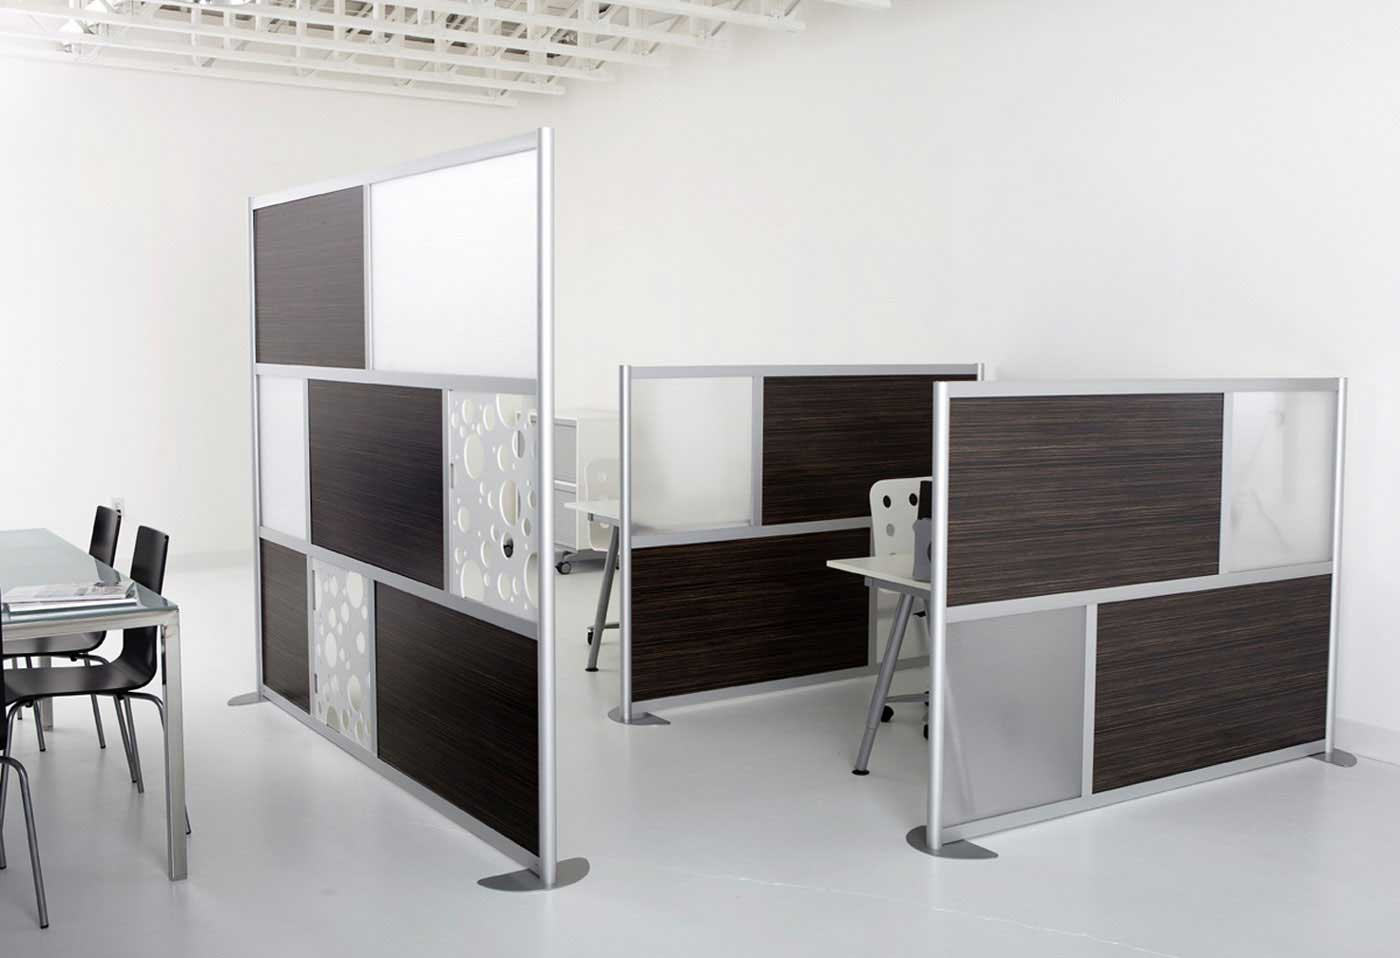 Loftwall stylish soundproof room dividers